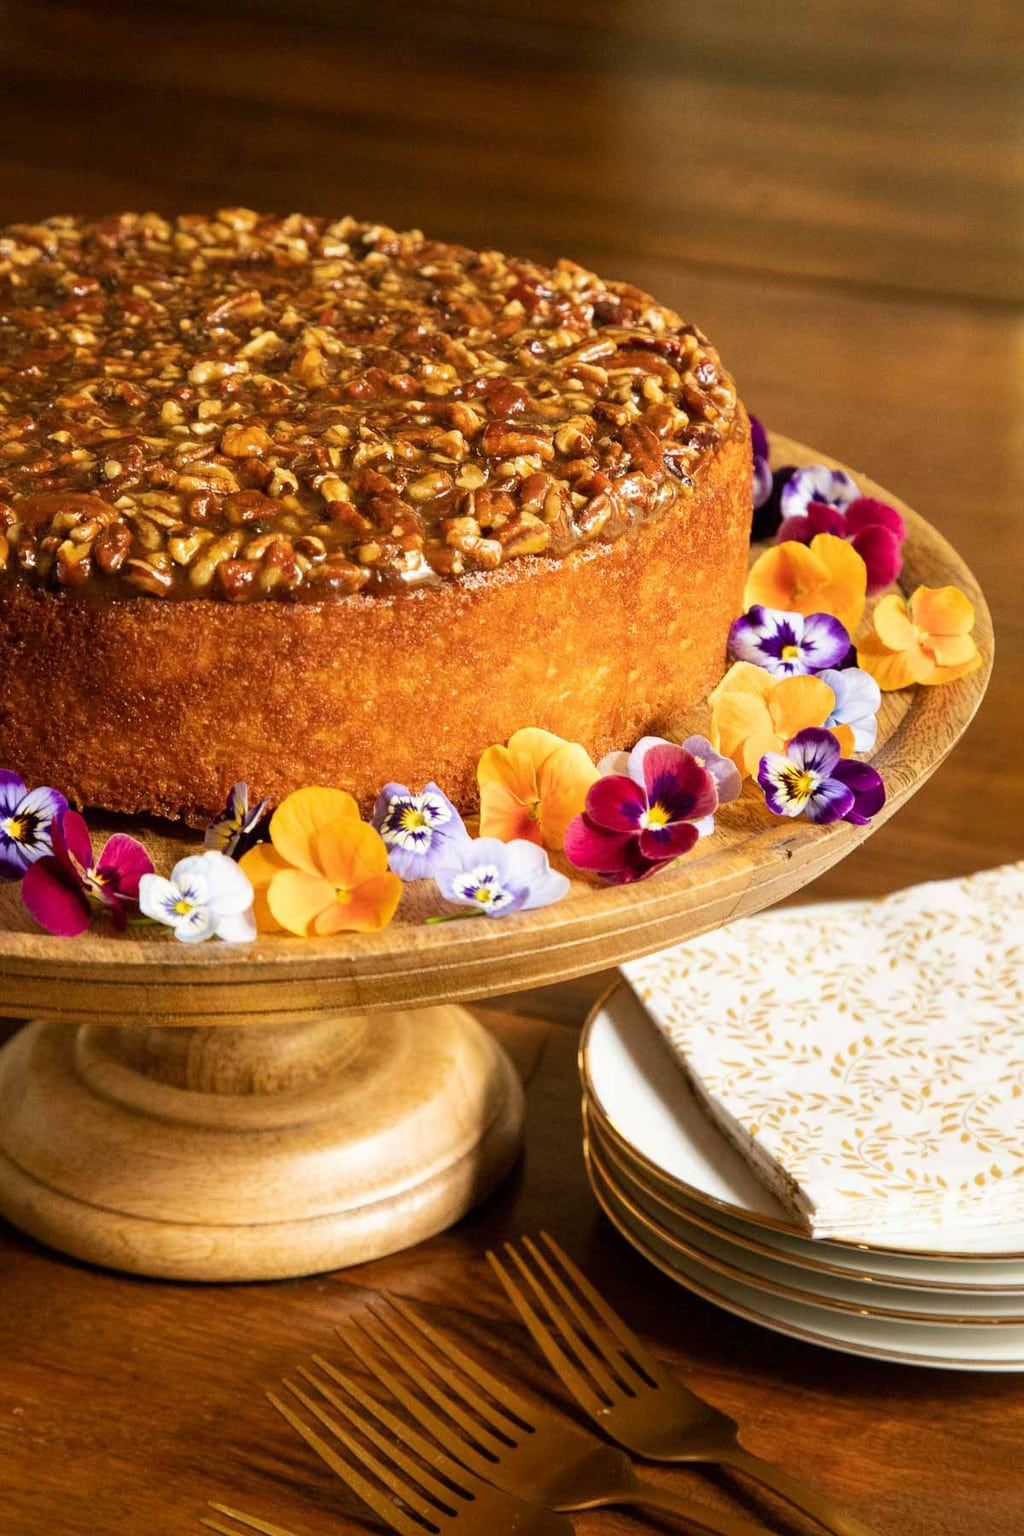 Vertical photo of a Ridiculously Easy Caramel Pecan Buttermilk Cake on a wood pedestal cake stand surrounded by mini pansies.